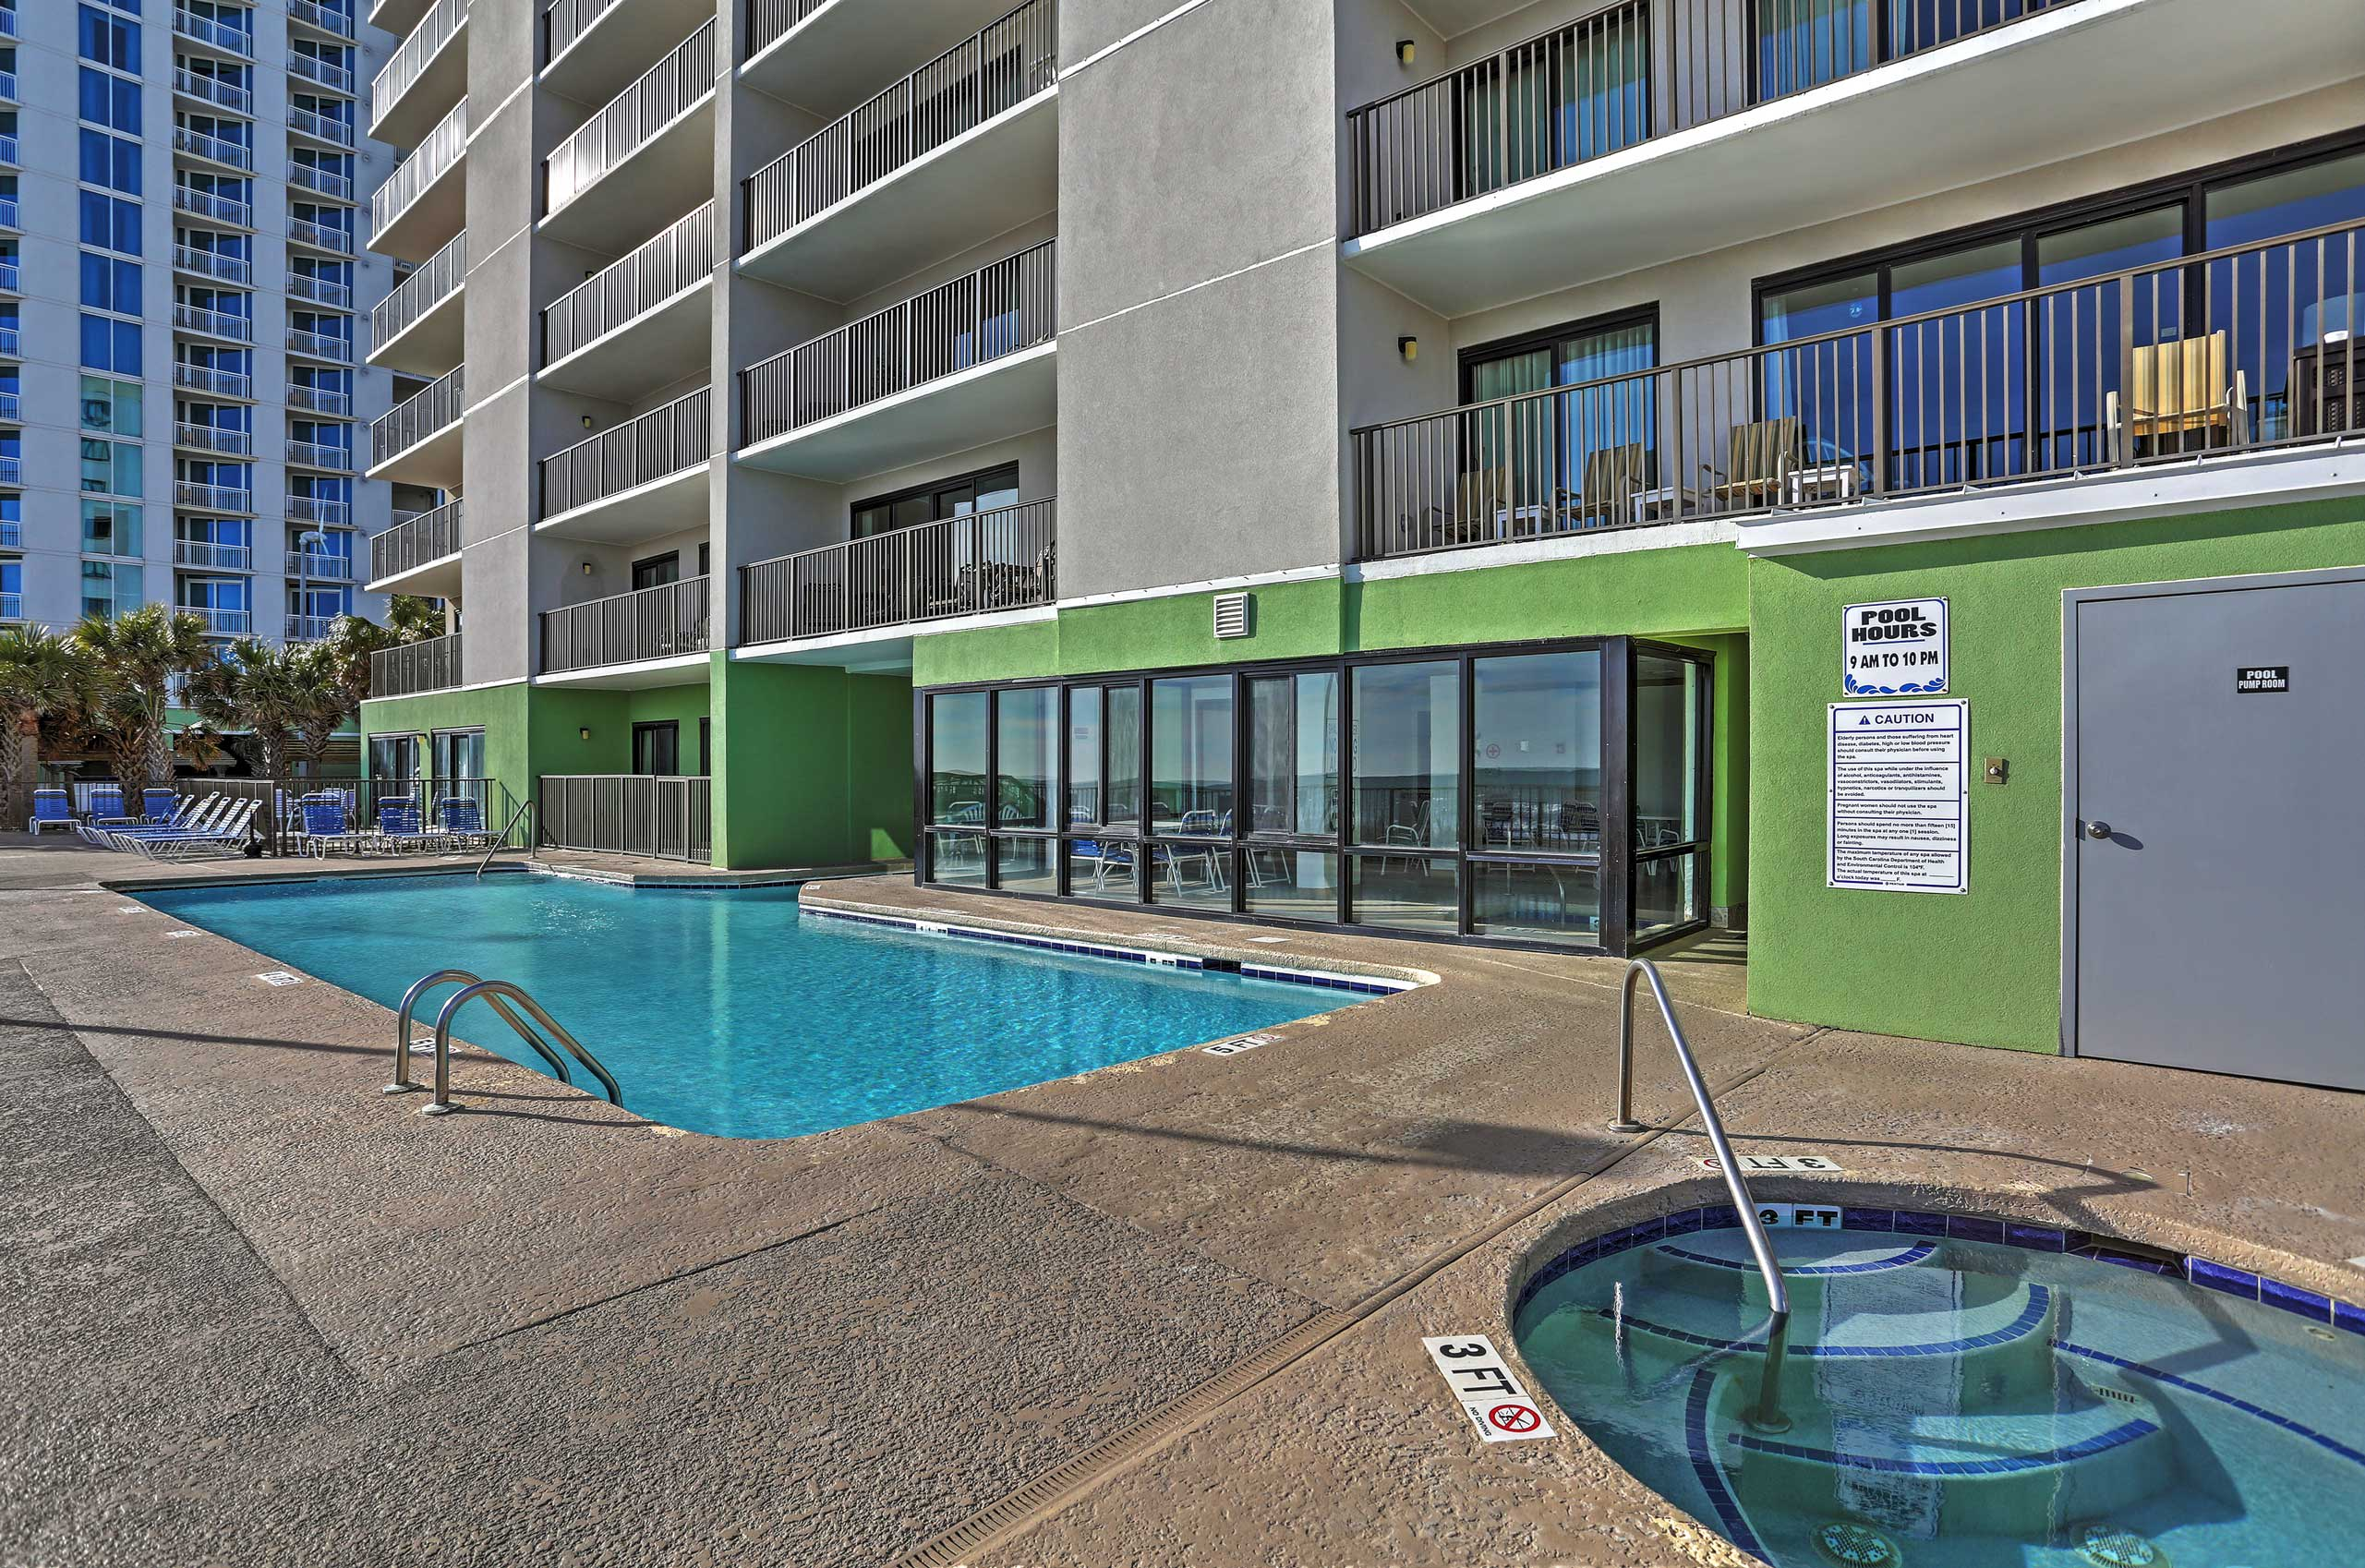 Book this North Myrtle Beach vacation rental house for memories you'll always cherish!